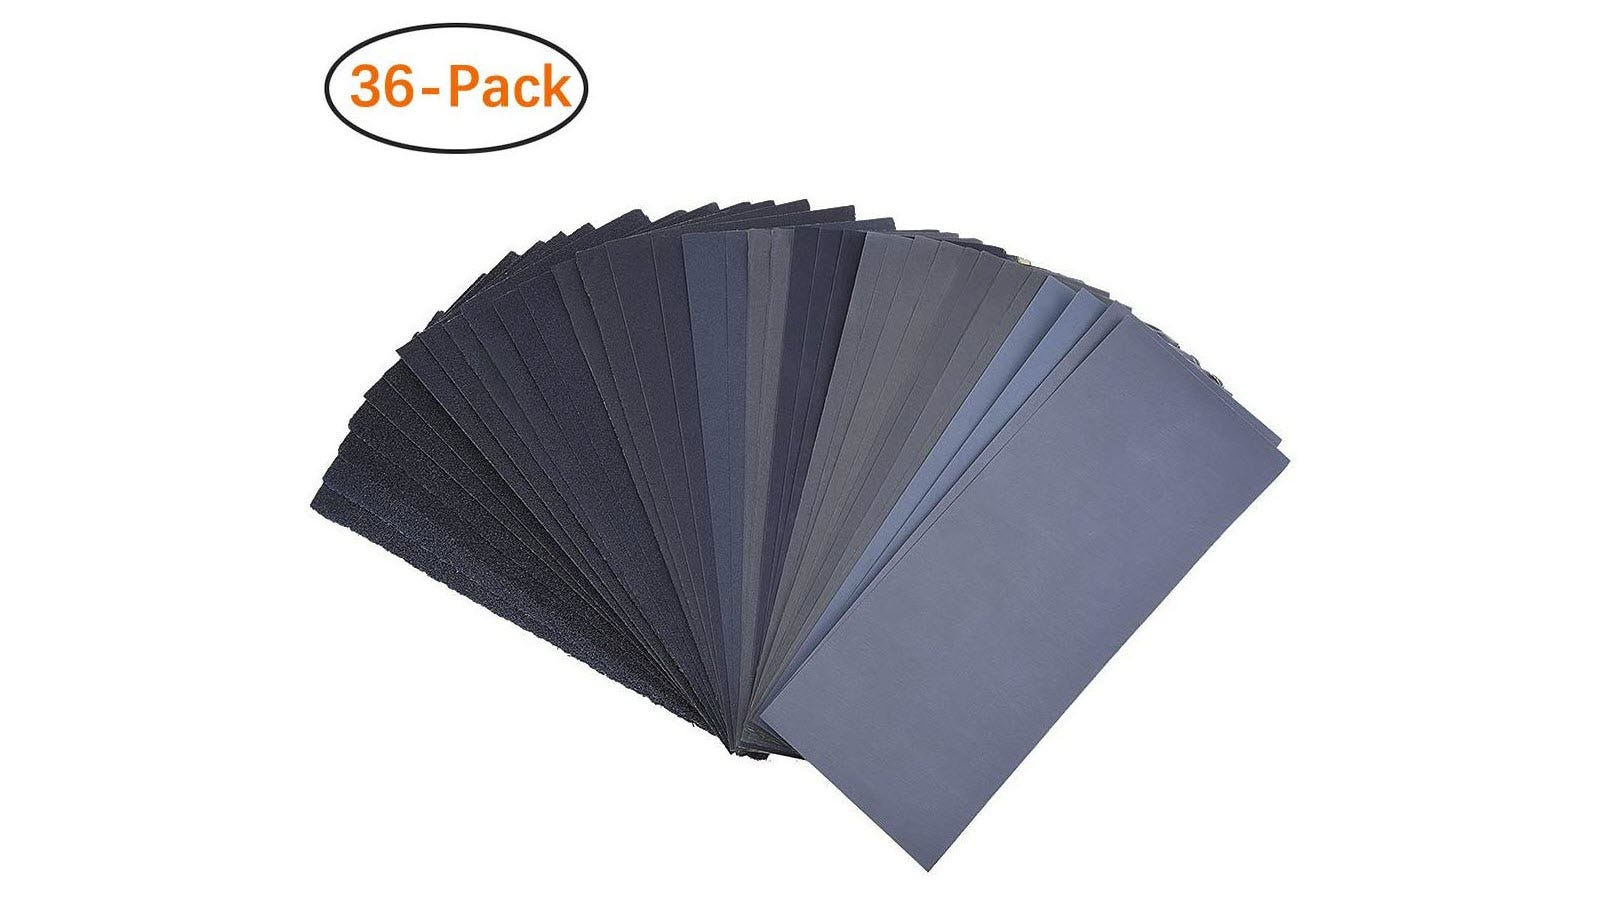 The thirty-six sheets of sandpaper in the Miady pack fanned out in a semicircle.